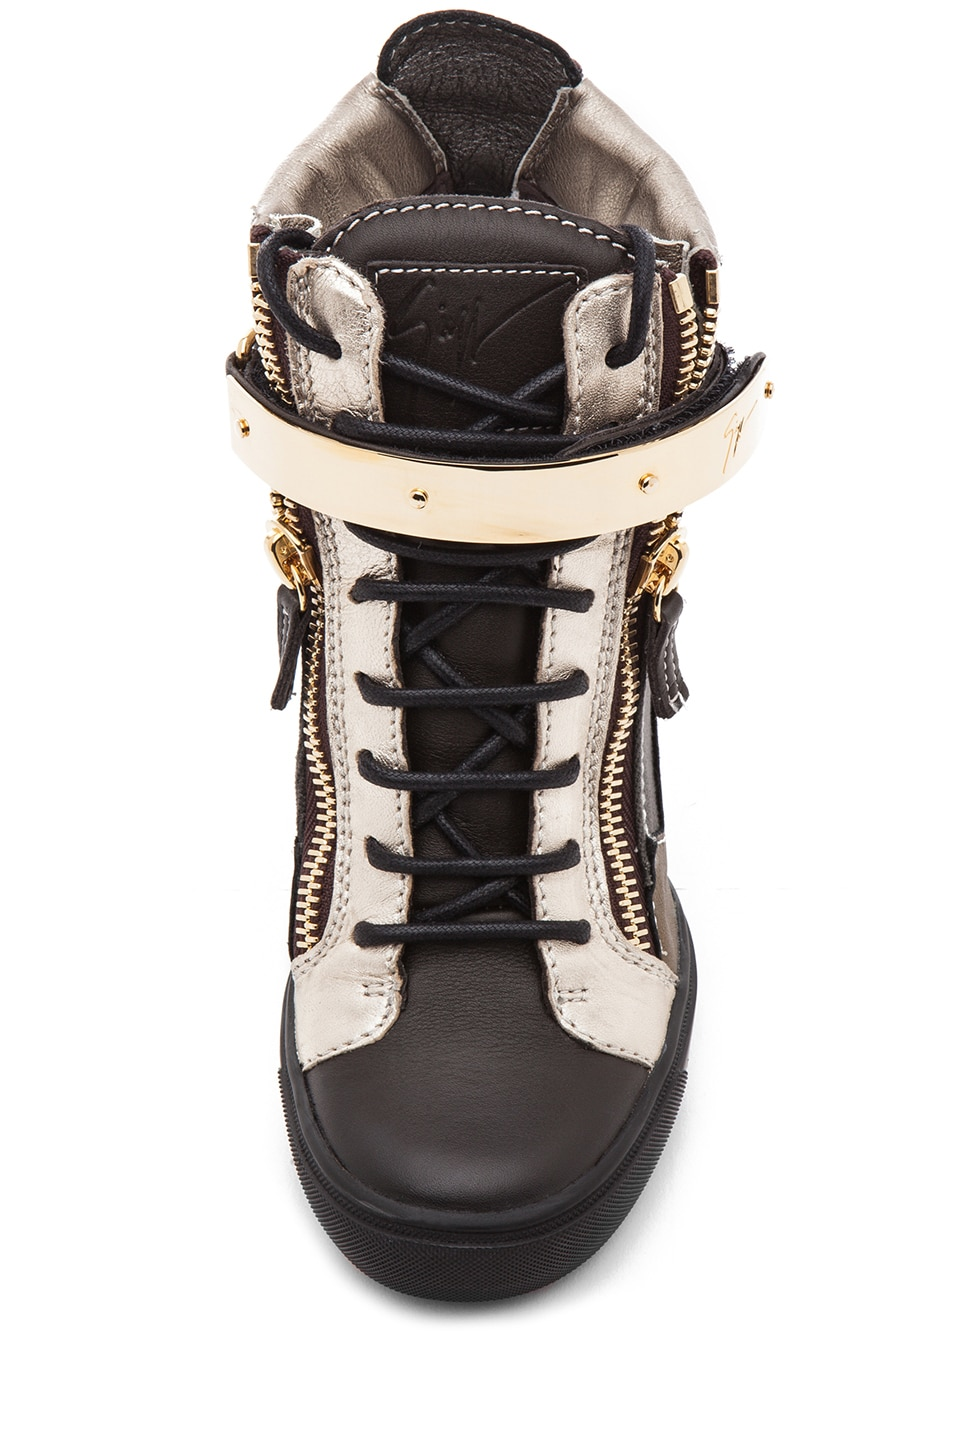 Image 4 of Giuseppe Zanotti Canvas & Leather Gold Strap Sneaker Wedge in Black Metallic